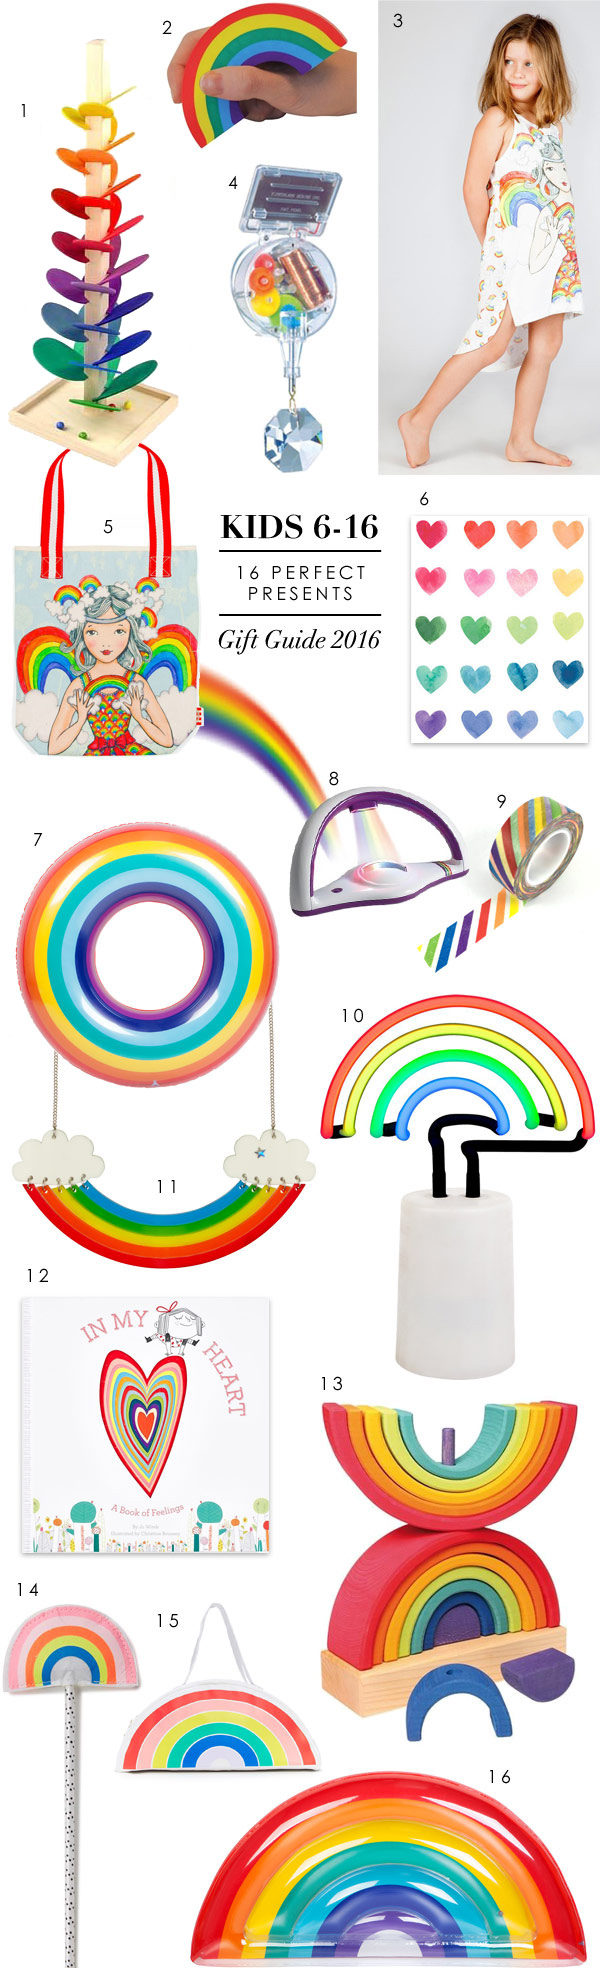 Wee Birdy's ultimate rainbow present gift guide for kids of all ages.